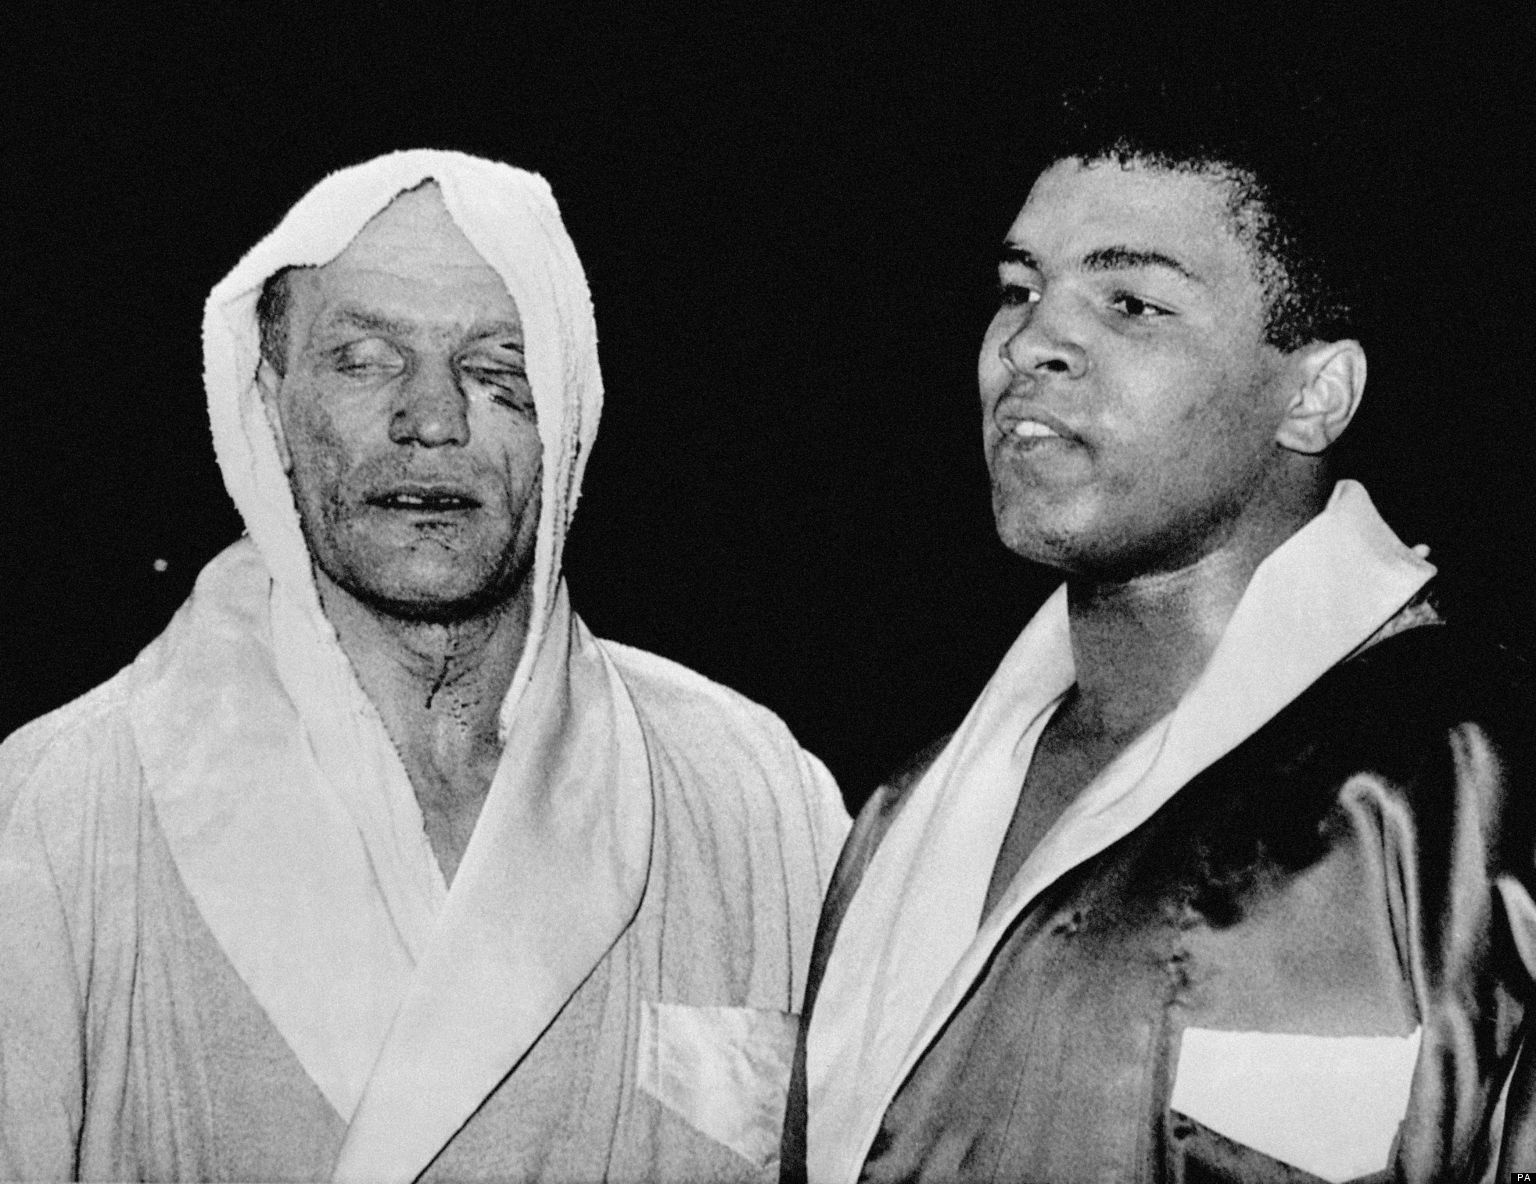 http://i.huffpost.com/gen/1191202/images/o-HENRY-COOPER-CASSIUS-CLAY-facebook.jpg